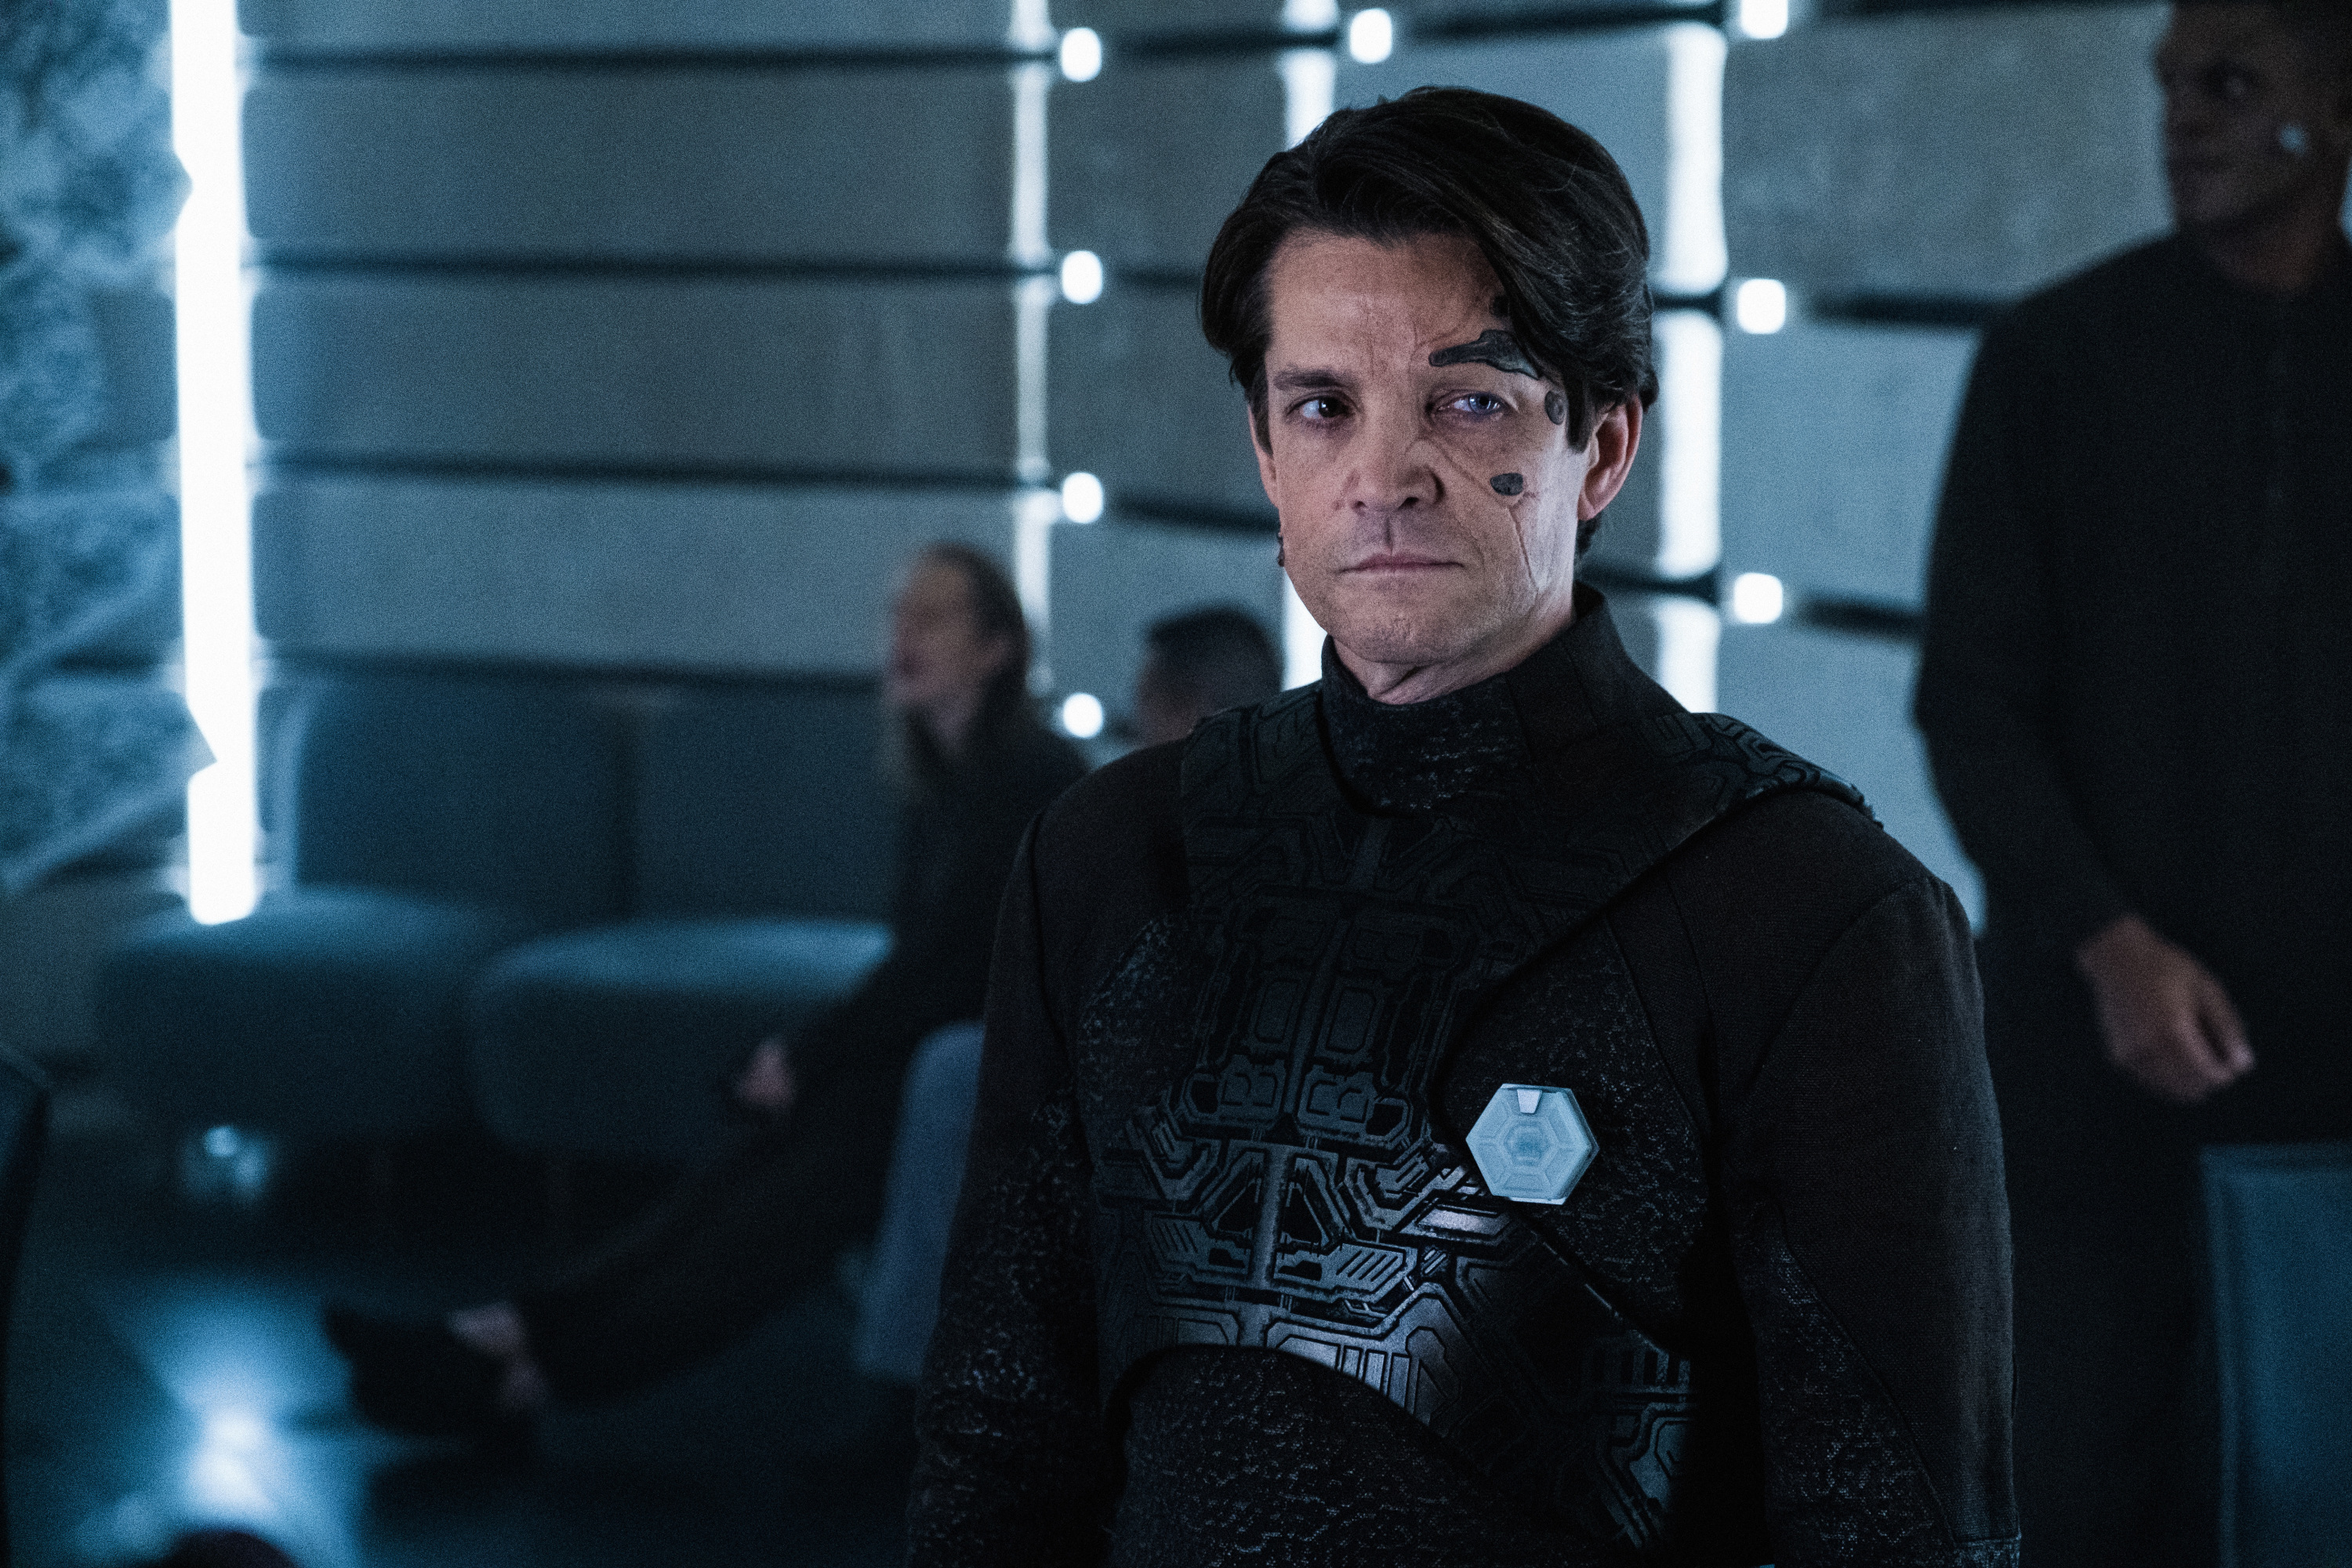 Hugh, a reclaimed Borg dressed in black and bearing metallic face inserts, looks offscreen in Star Trek: Picard.